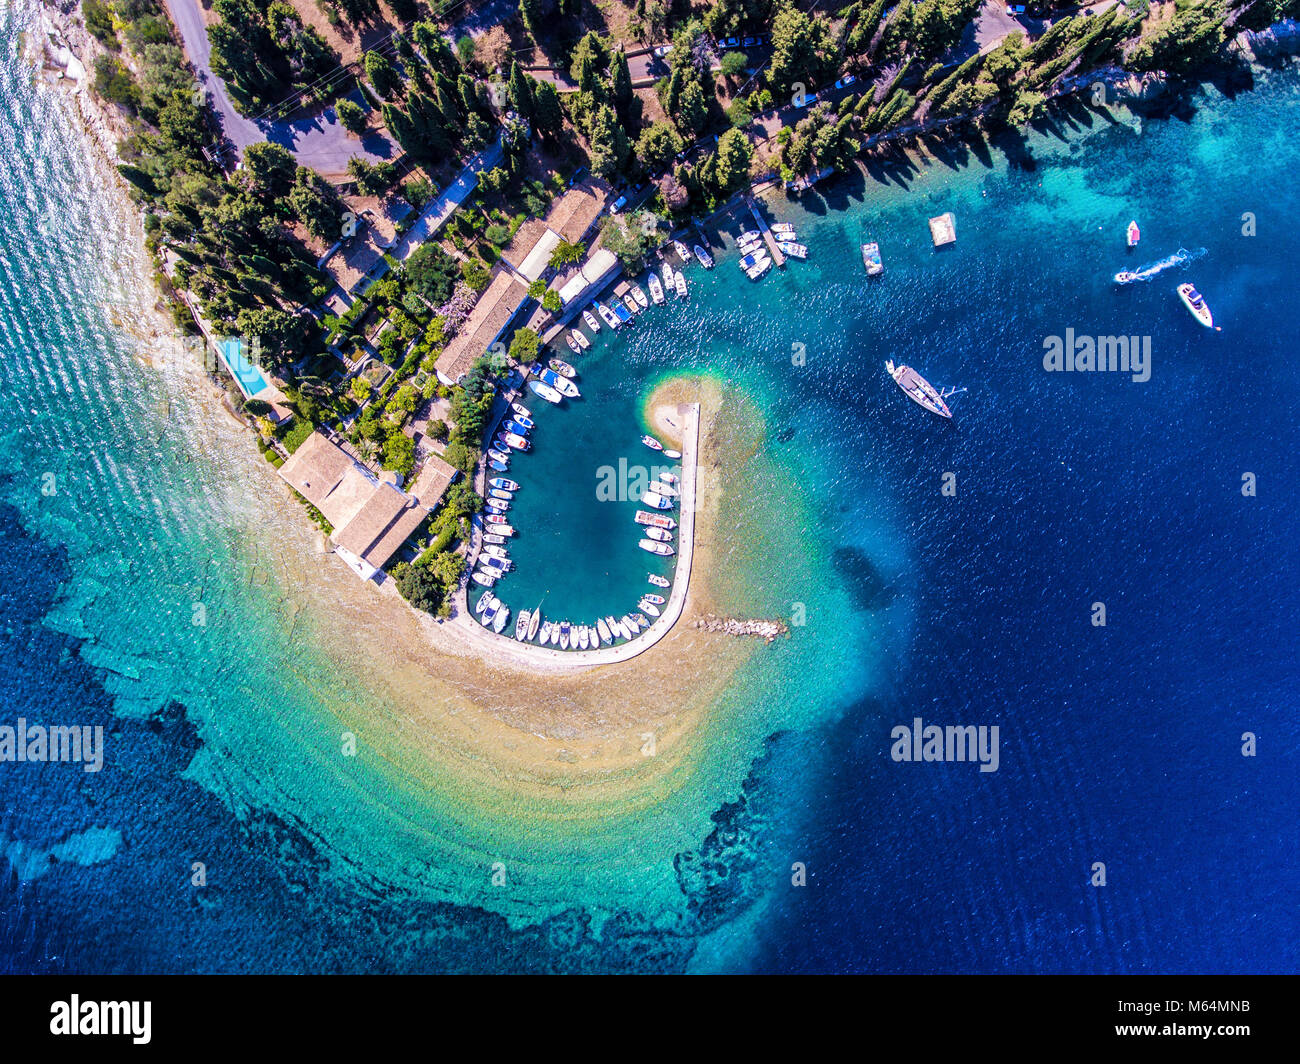 Kouloura old fishing village and beach. Corfu (Kerkyra) Island, Greece, Europe. Fishing boats and clear blue waters. - Stock Image